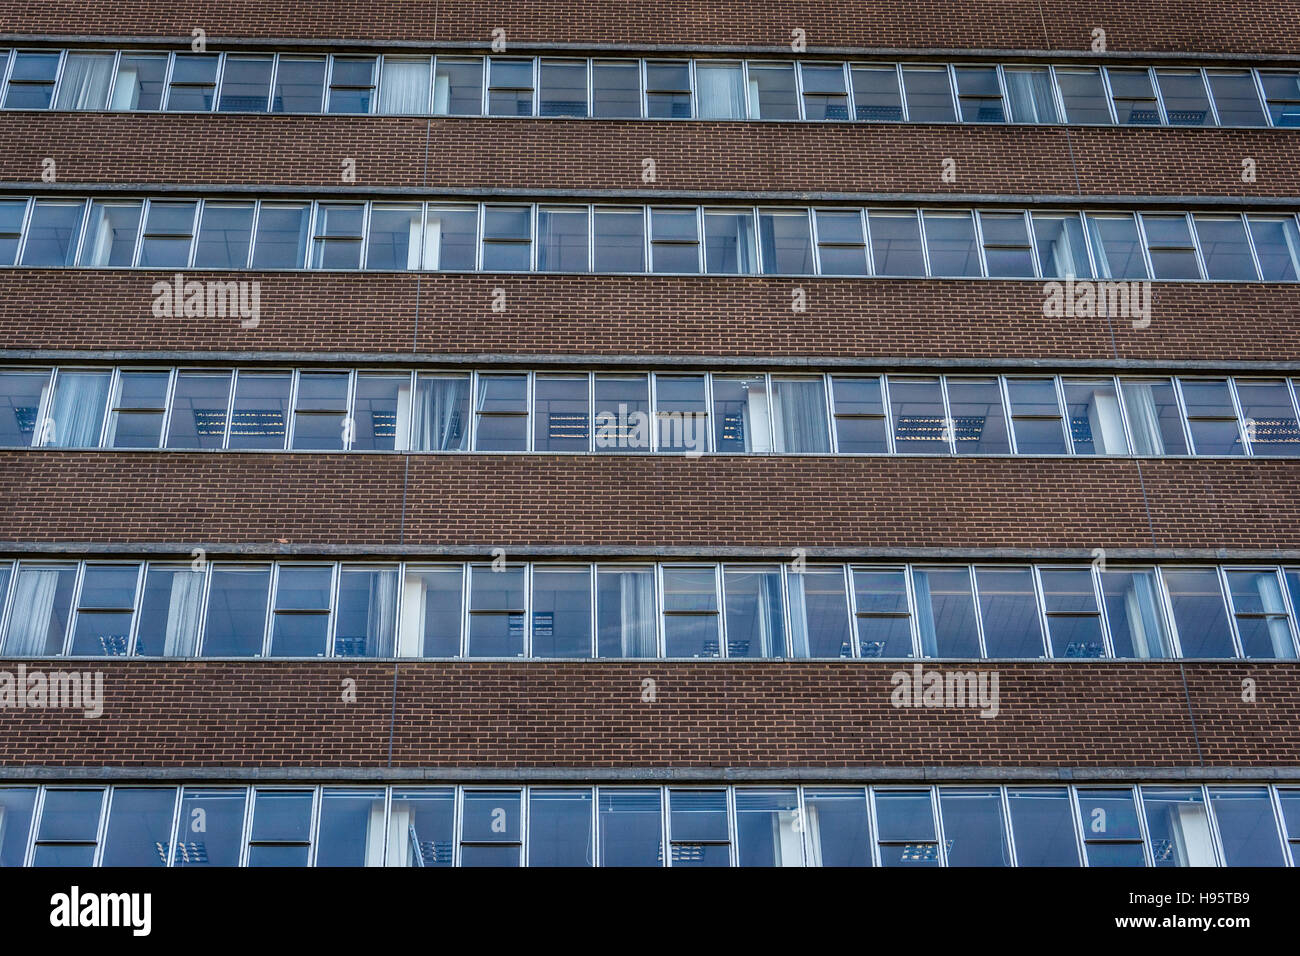 The rear of Crown House which comprises a nine storey purpose built office block constructed in the 1970s. - Stock Image